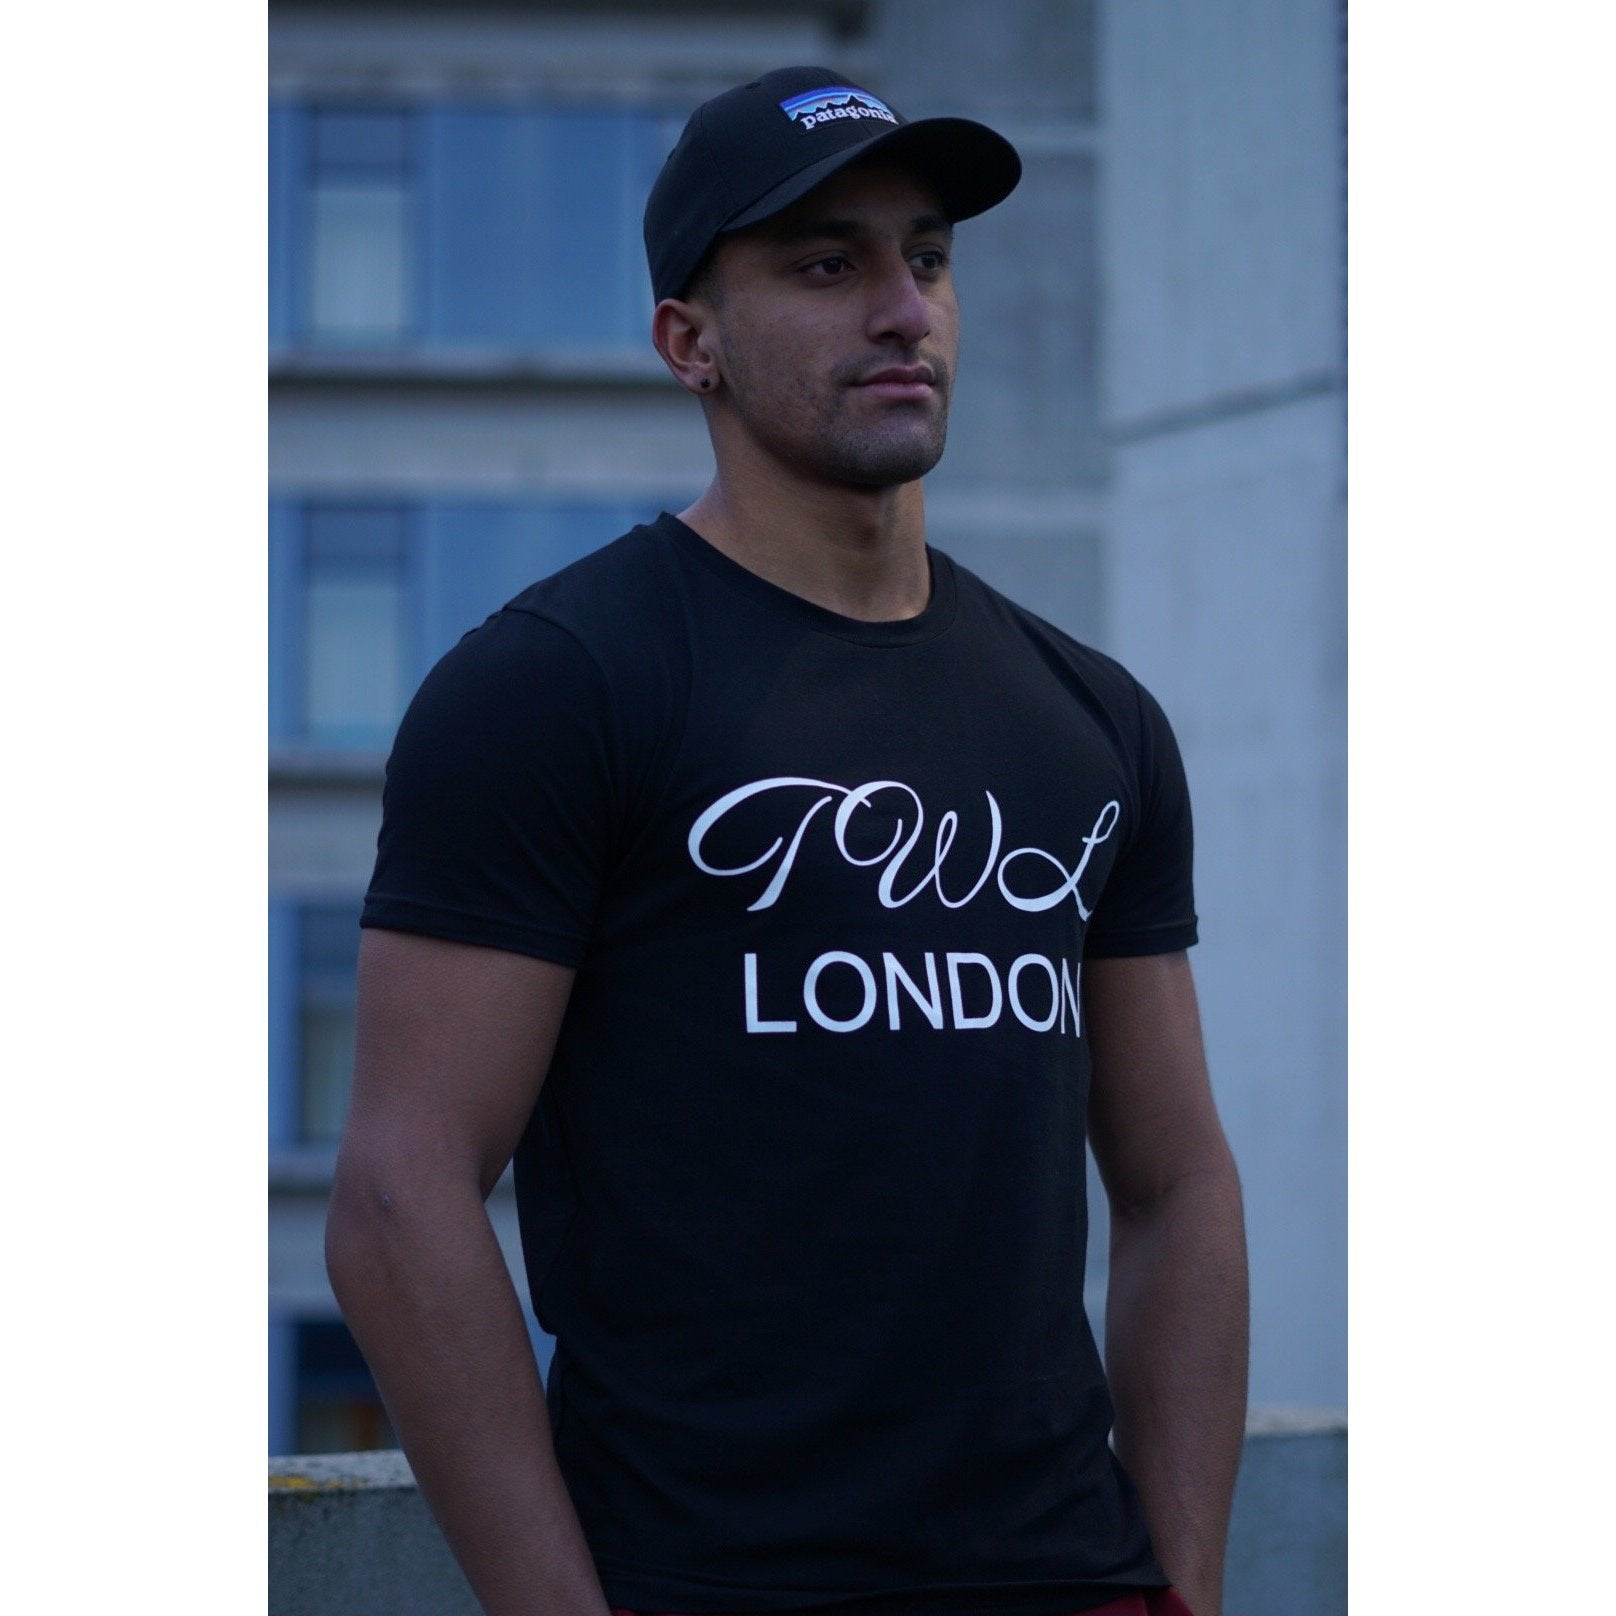 Super Nova Black T-shirt - The Wolfe London